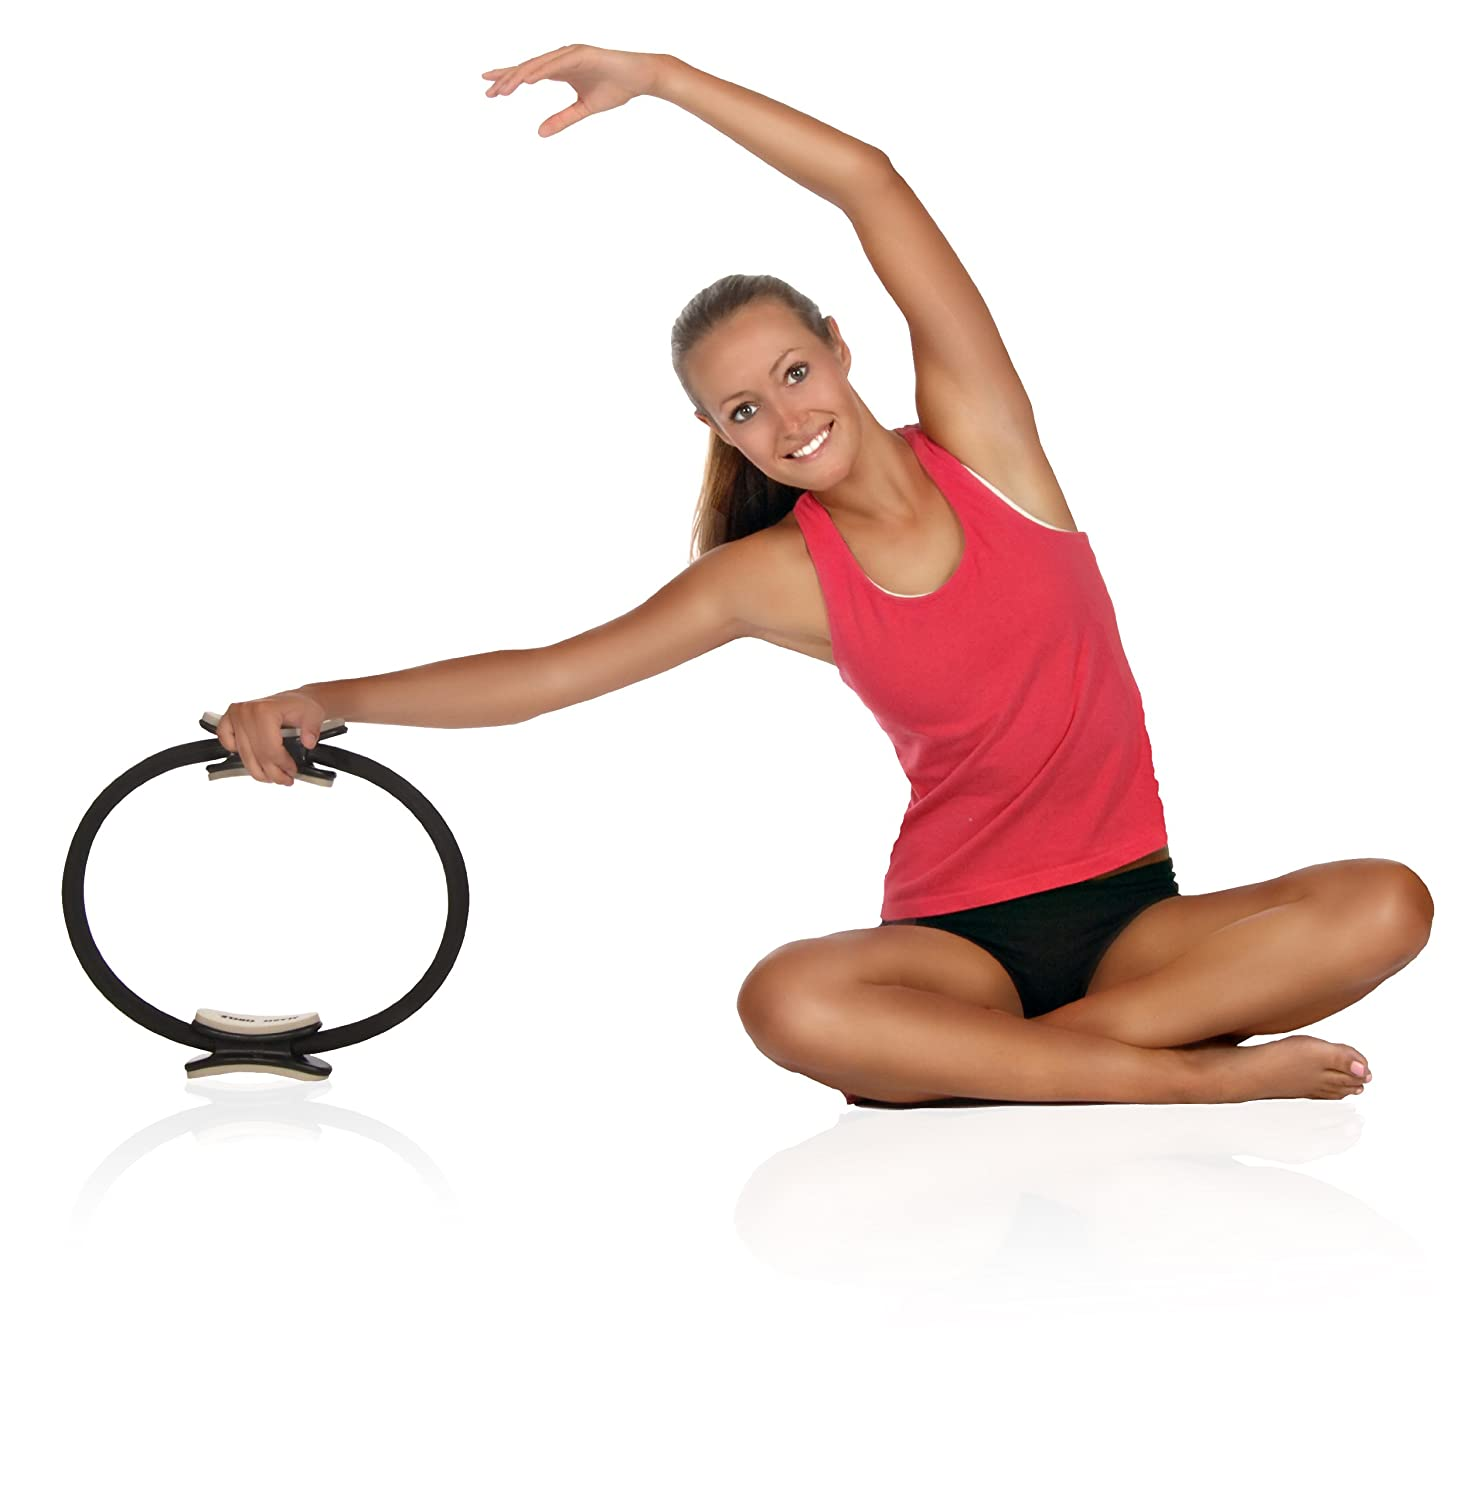 Before You Choose Buy a Pilates Ring Before You Choose Buy a Pilates Ring new pictures